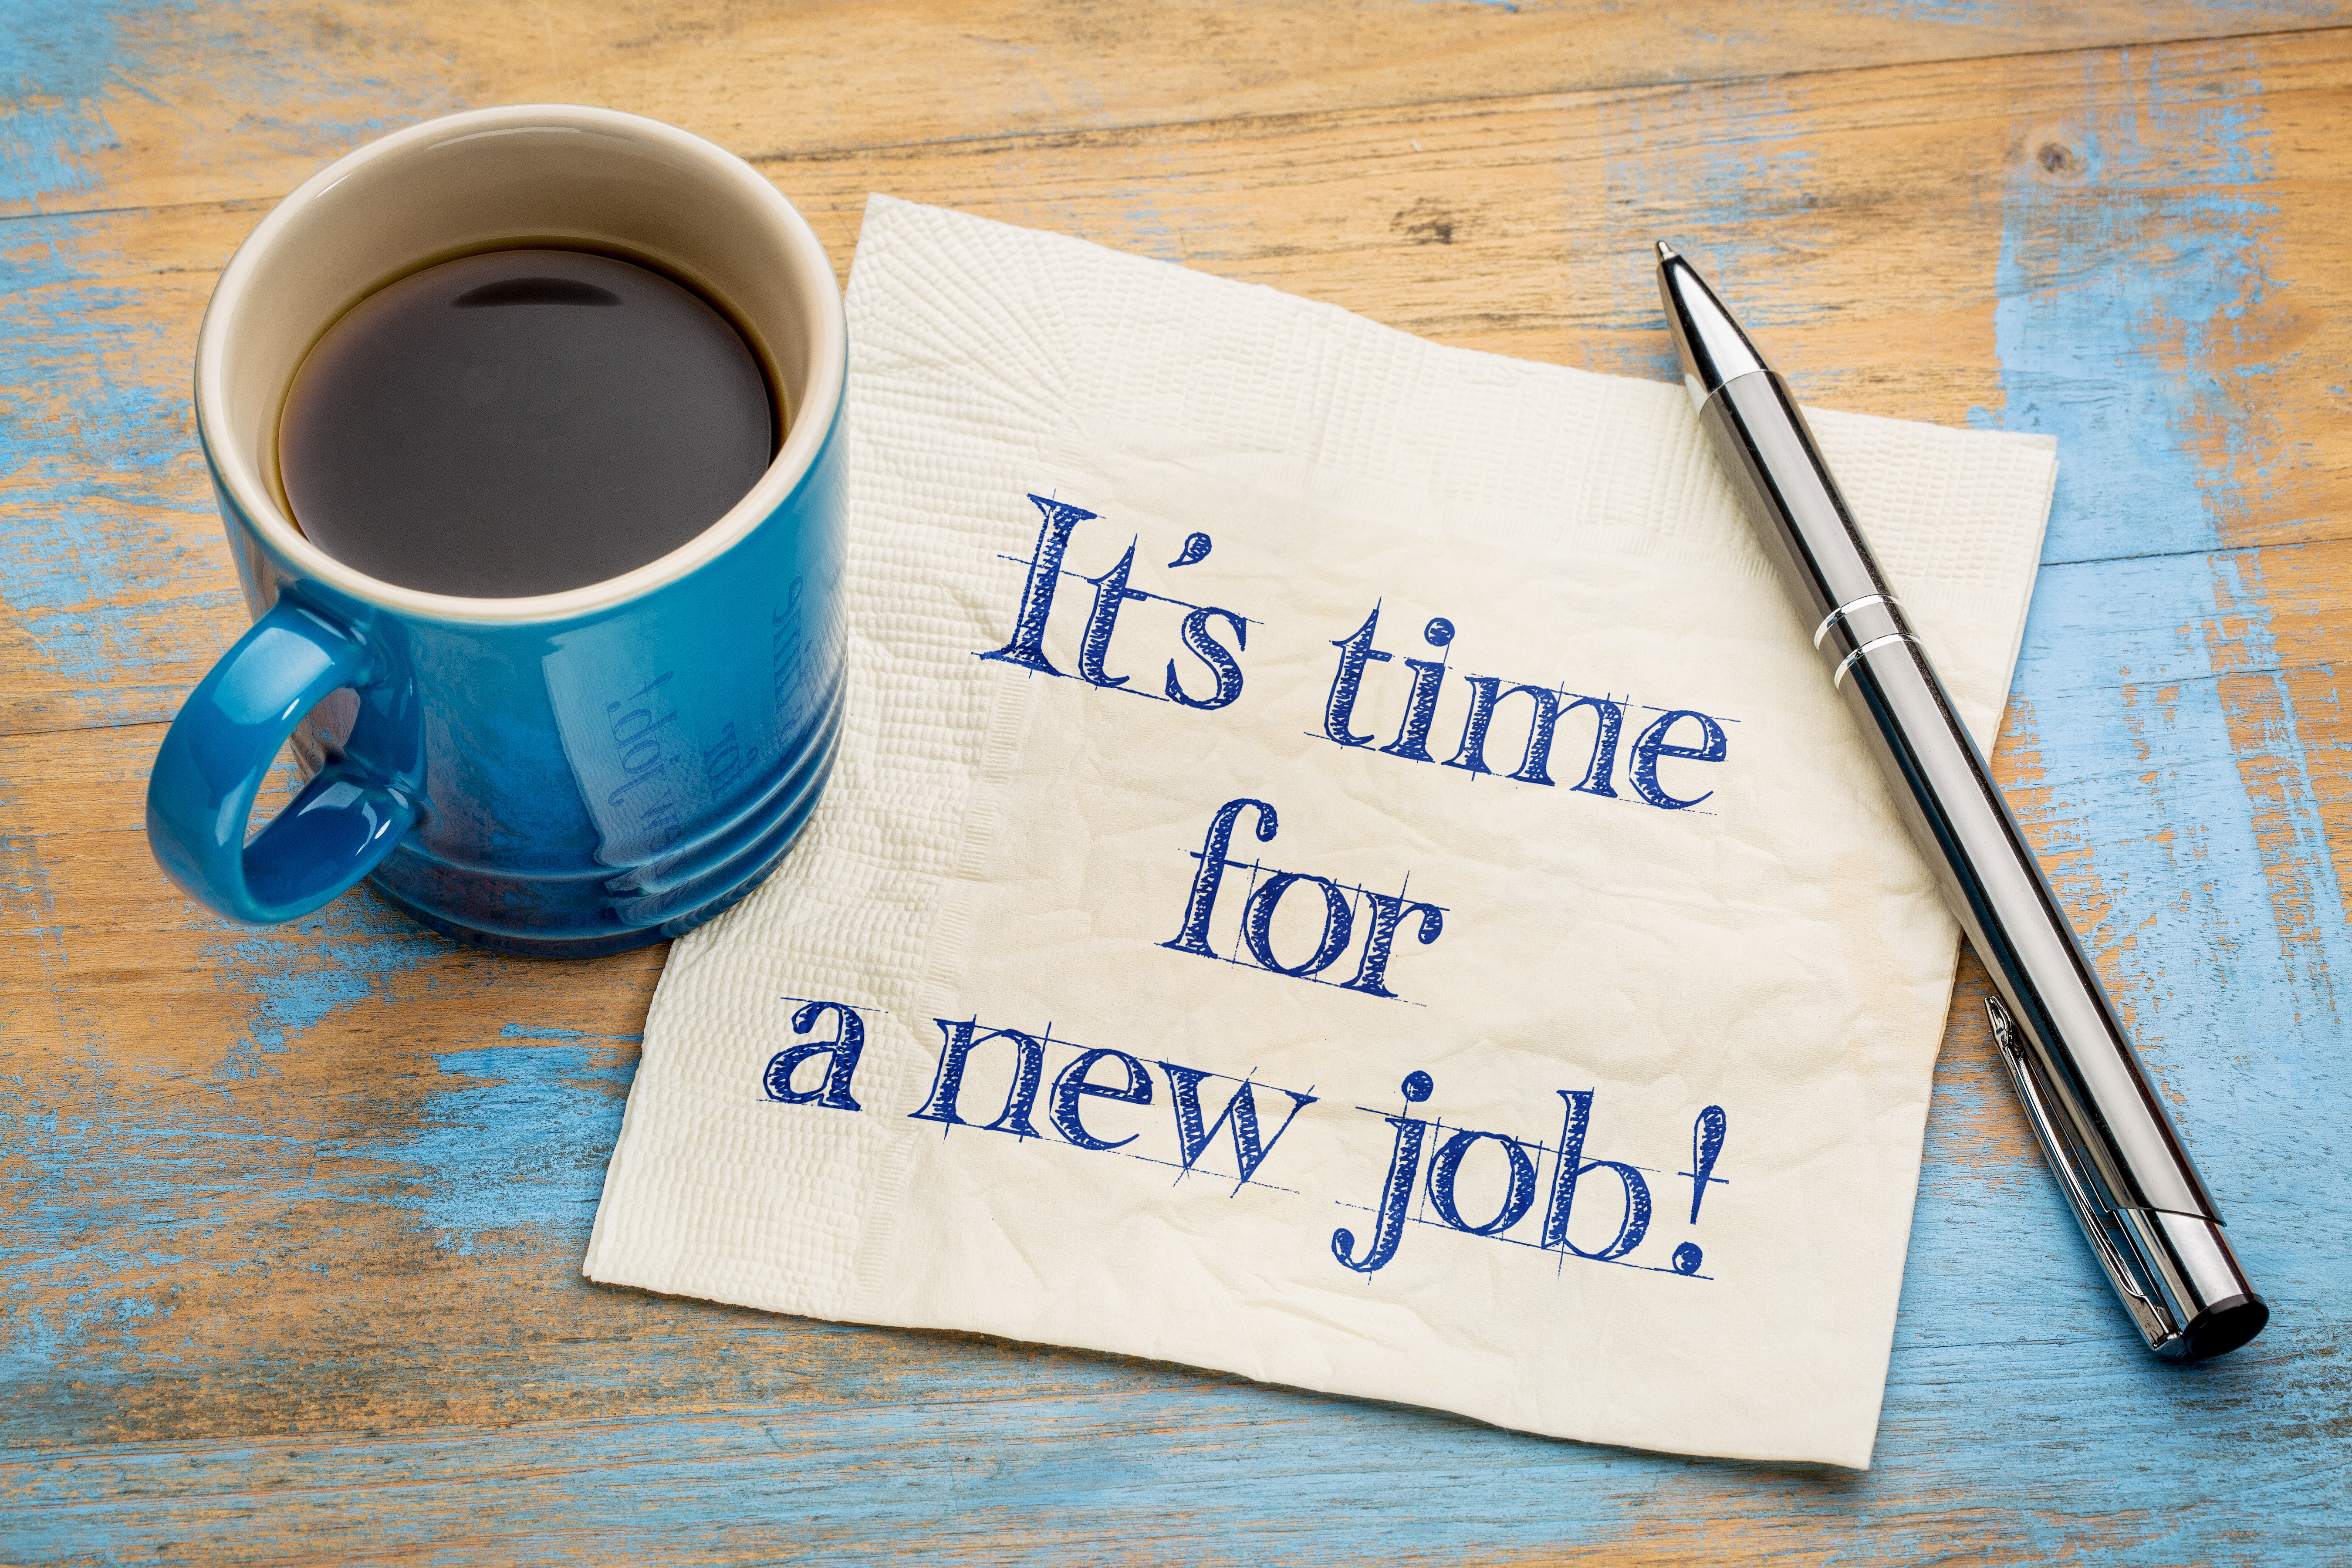 It is time for a new job!